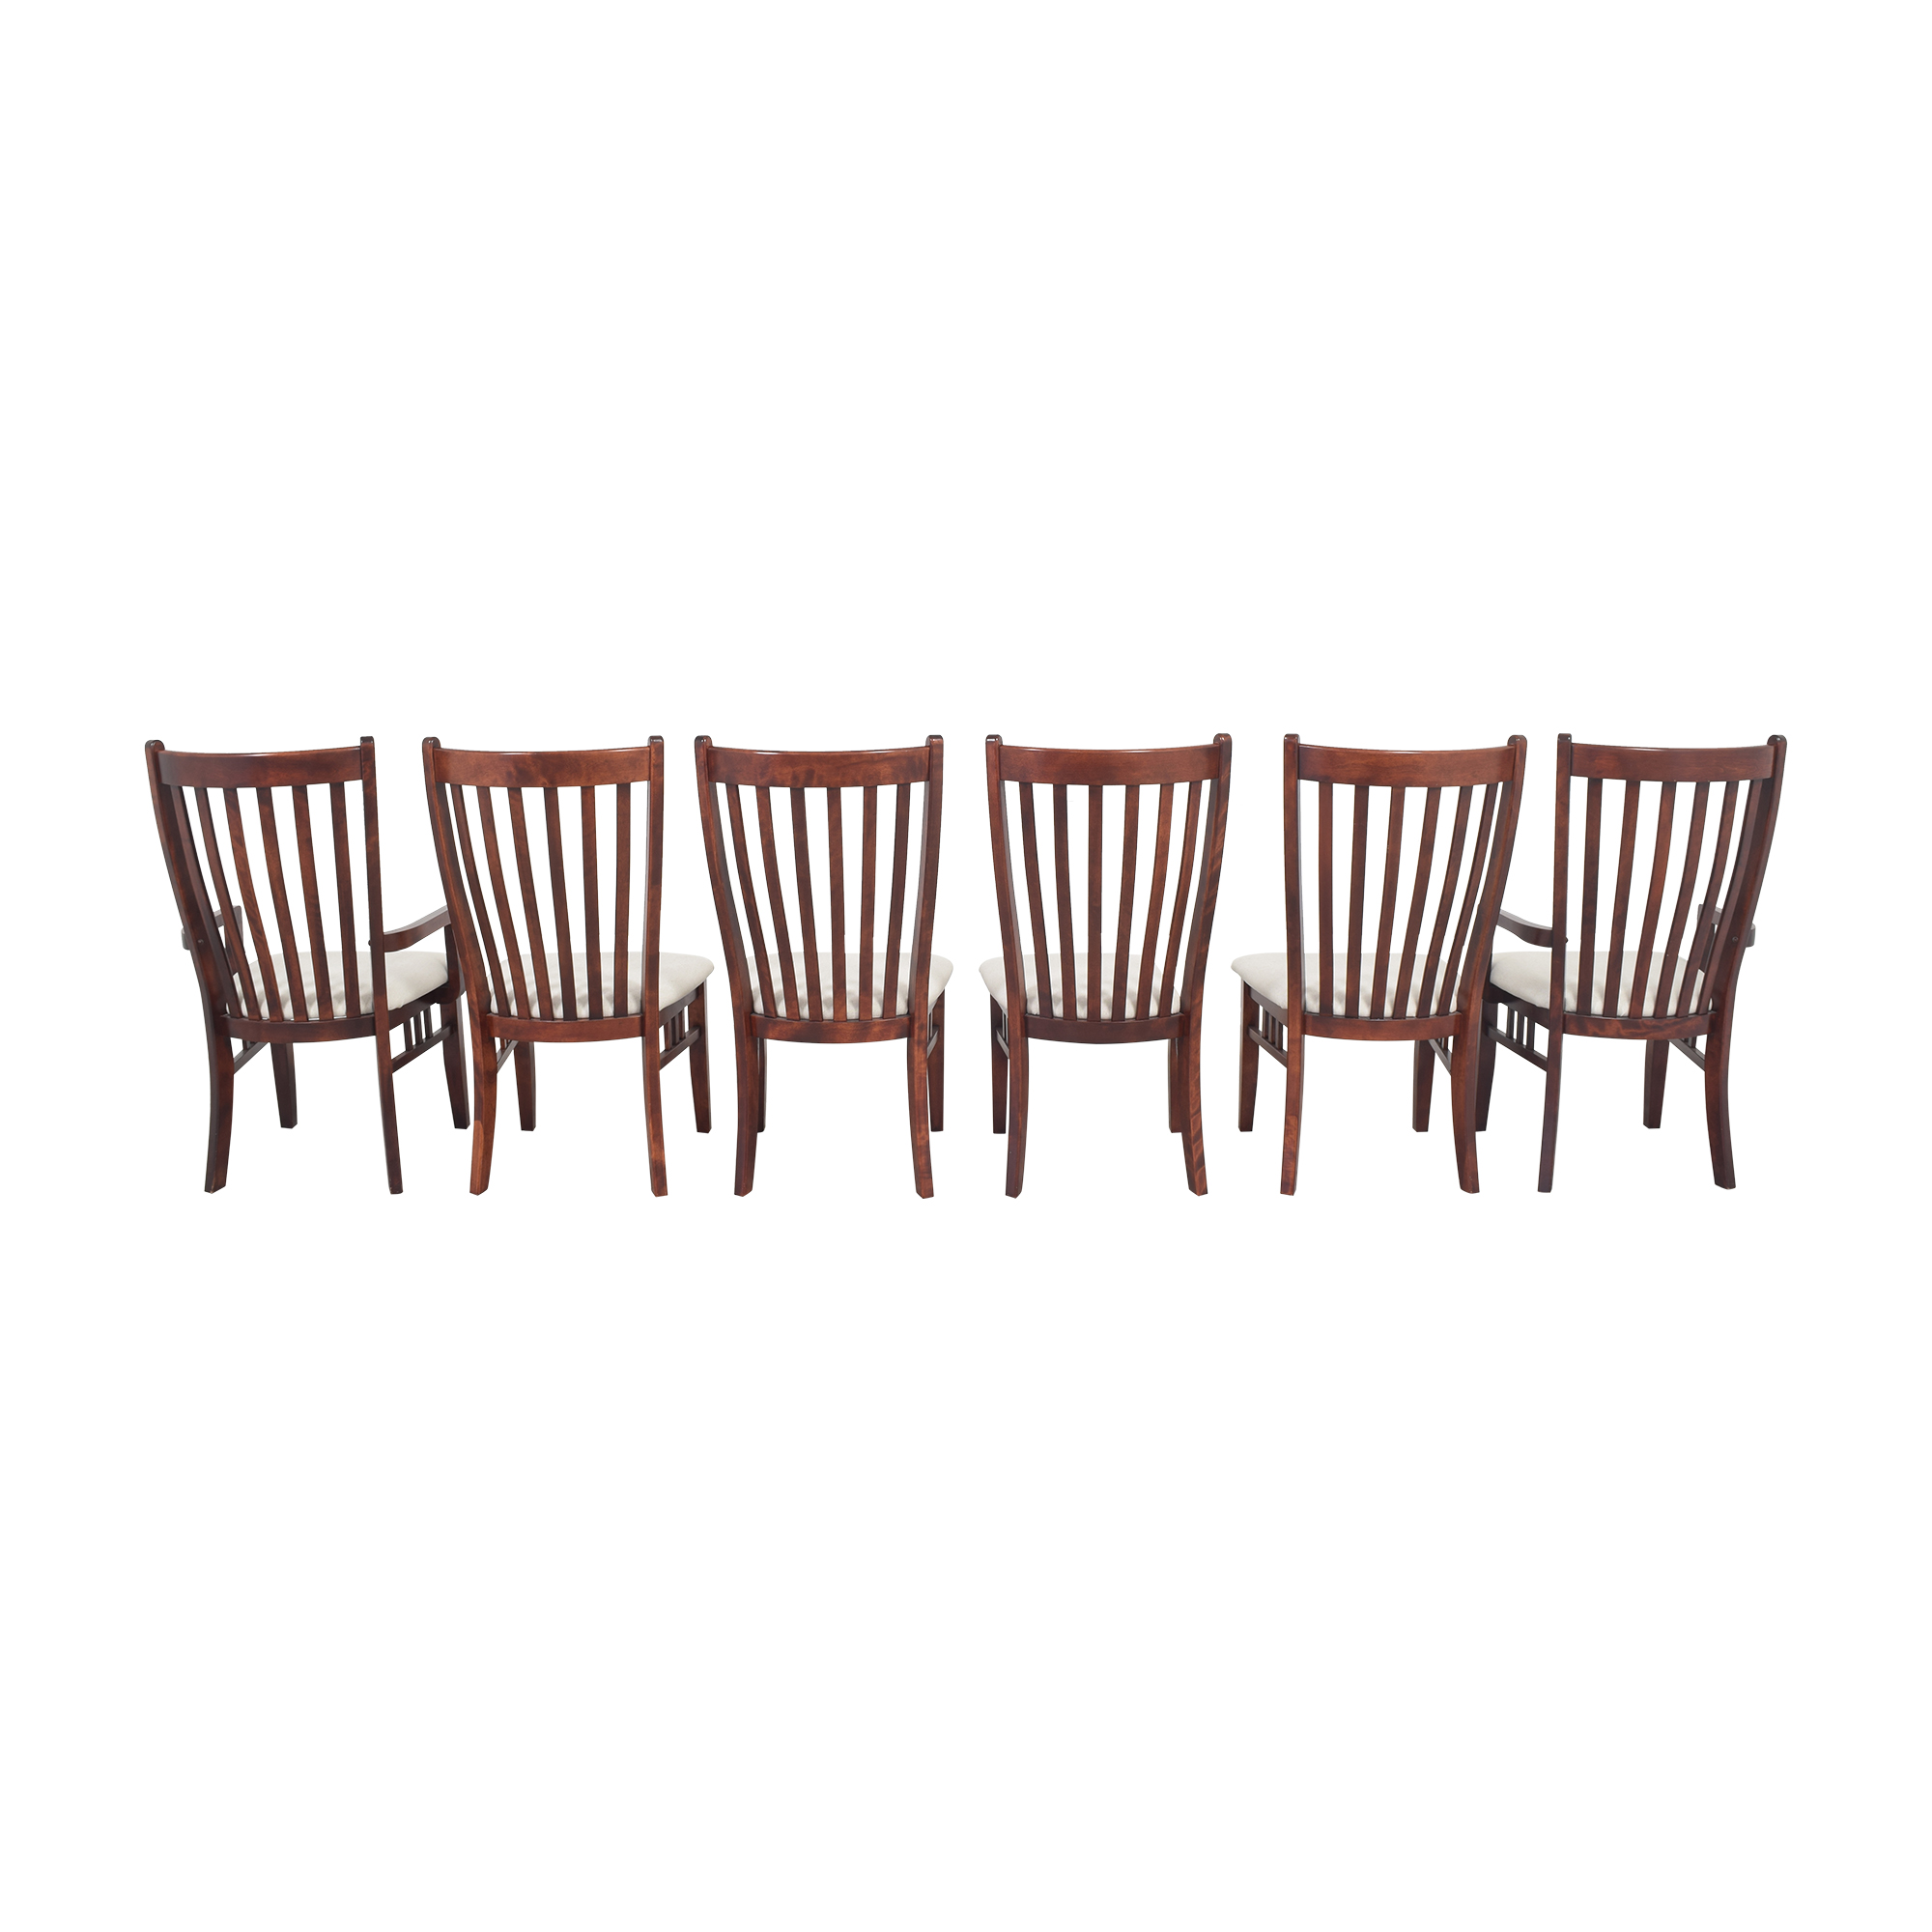 Canadel Canadel Slat Back Dining Chairs price